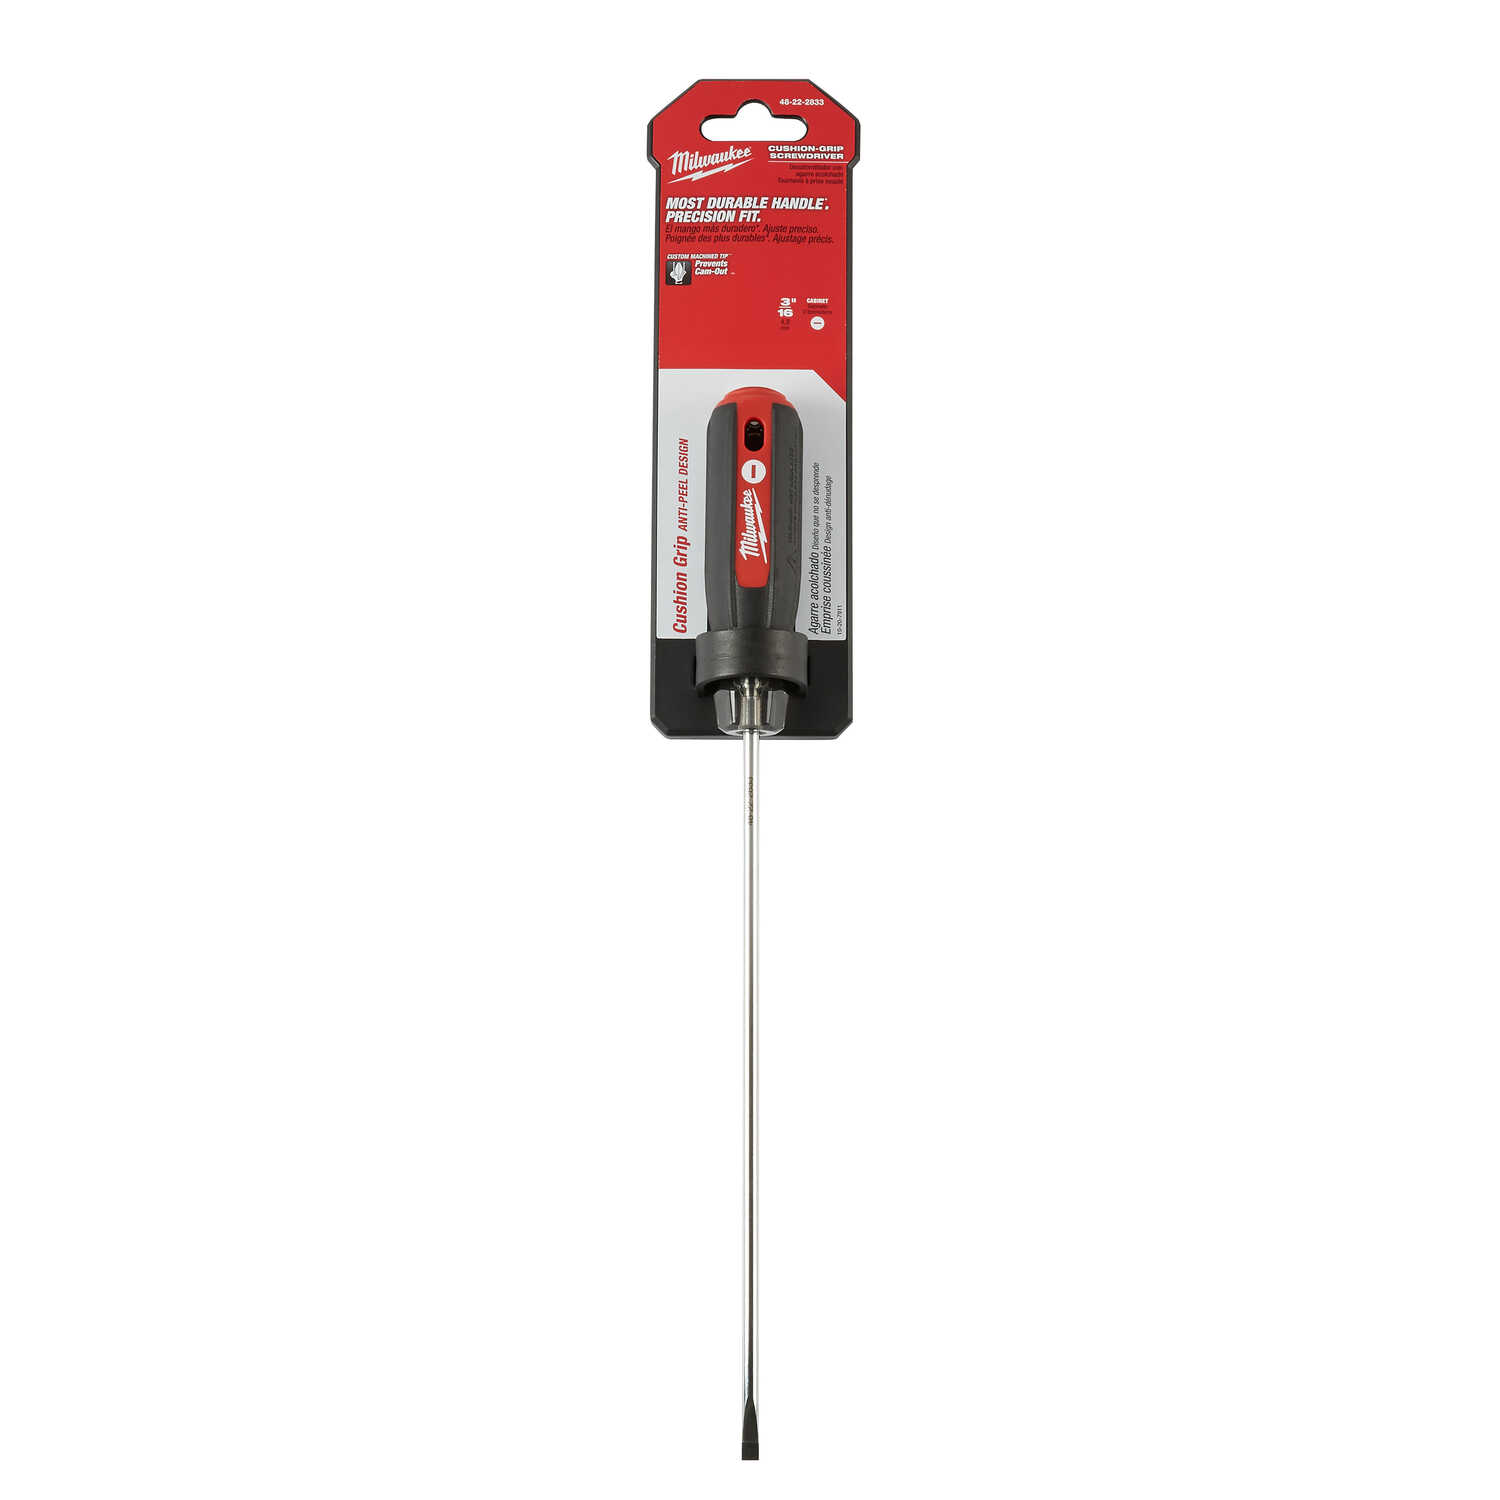 Milwaukee  3/16 in.  x 8 in. L Slotted  Cushion Grip  Screwdriver  1 pc.